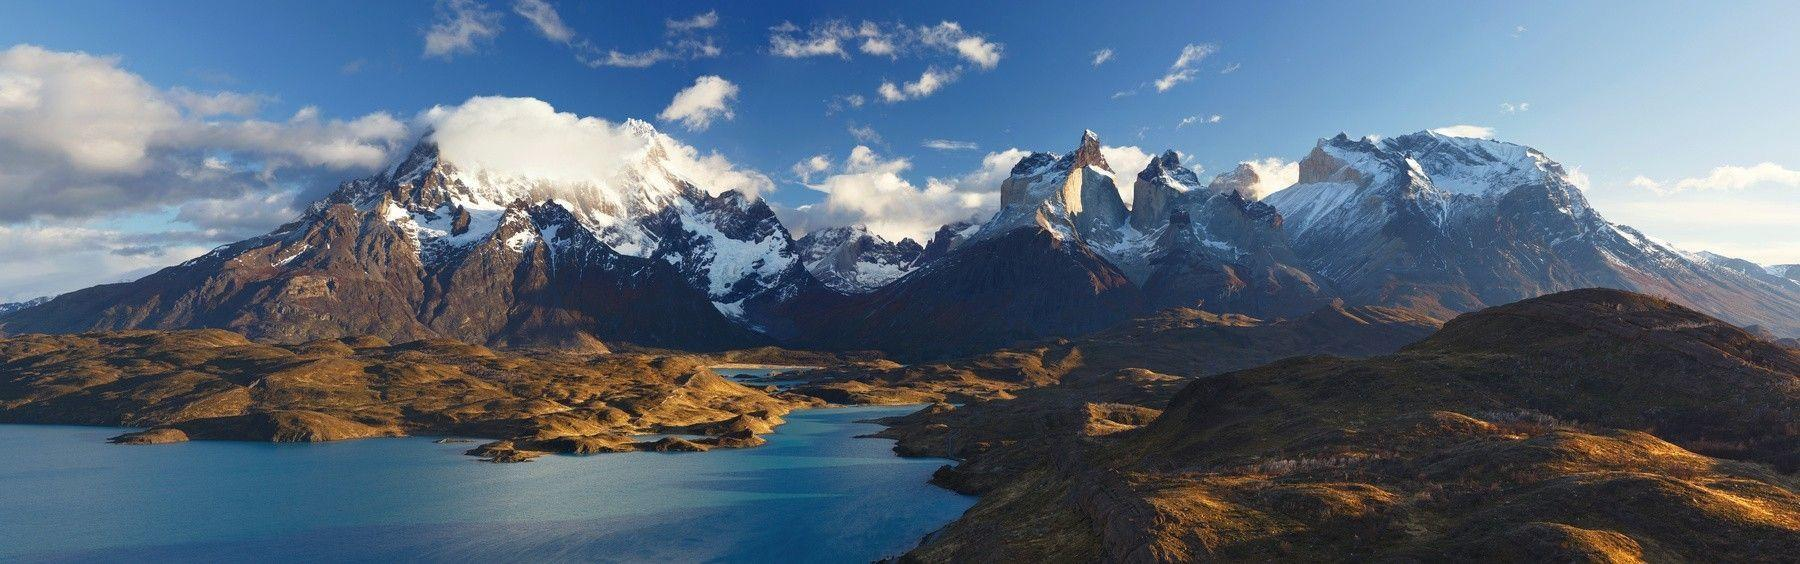 chili-patagonie-parc-national-torres-del-paine